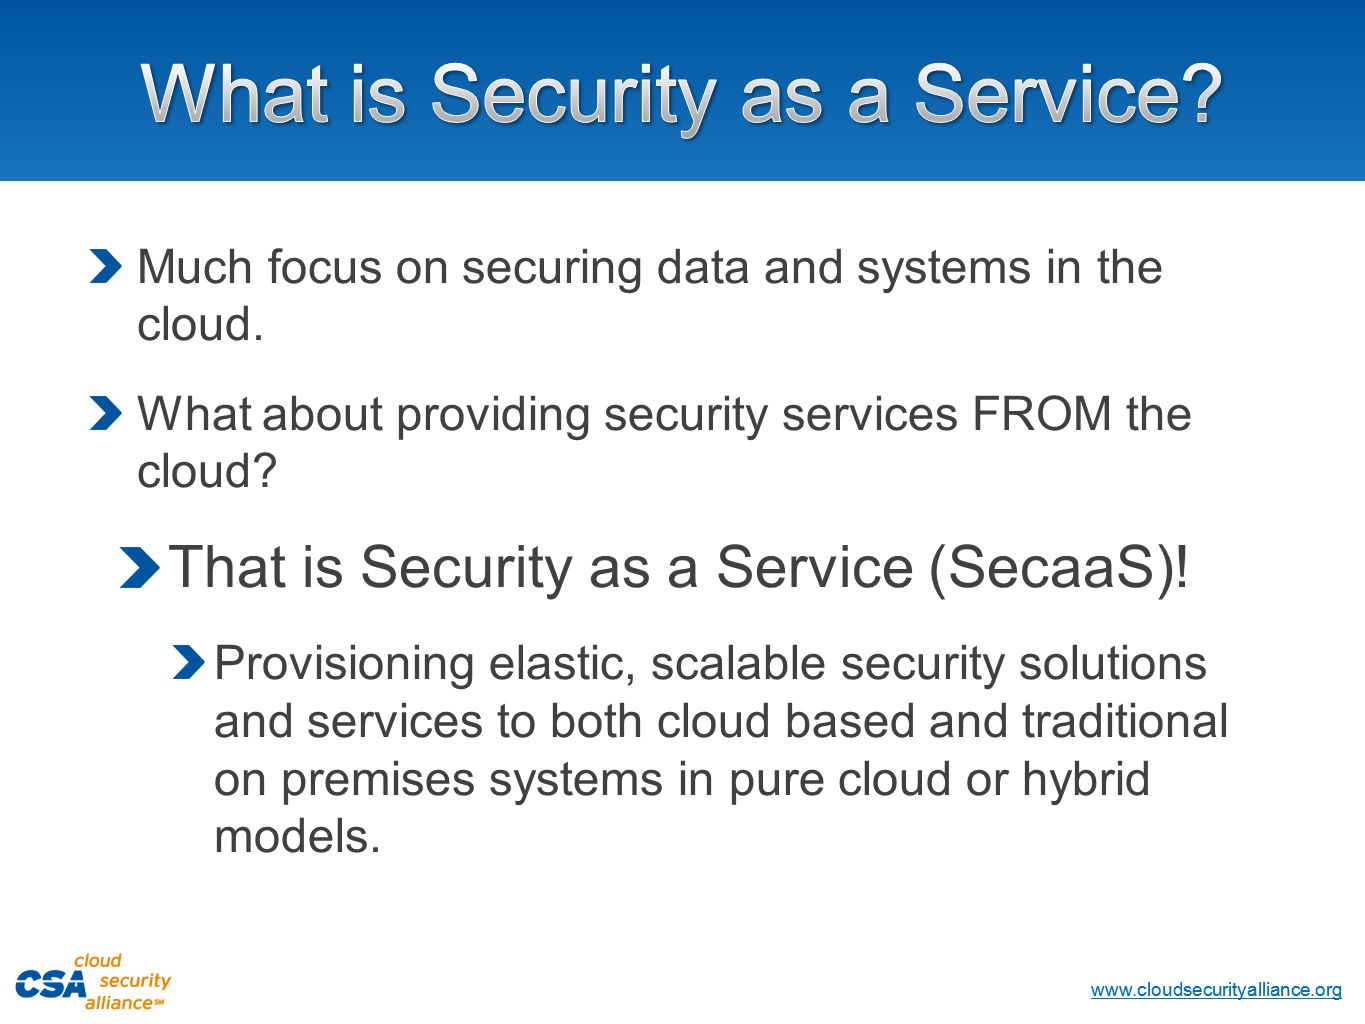 www.cloudsecurityalliance.org Copyright © 2013 Cloud Security Alliance www.cloudsecurityalliance.org Much focus on securing data and systems in the cloud.